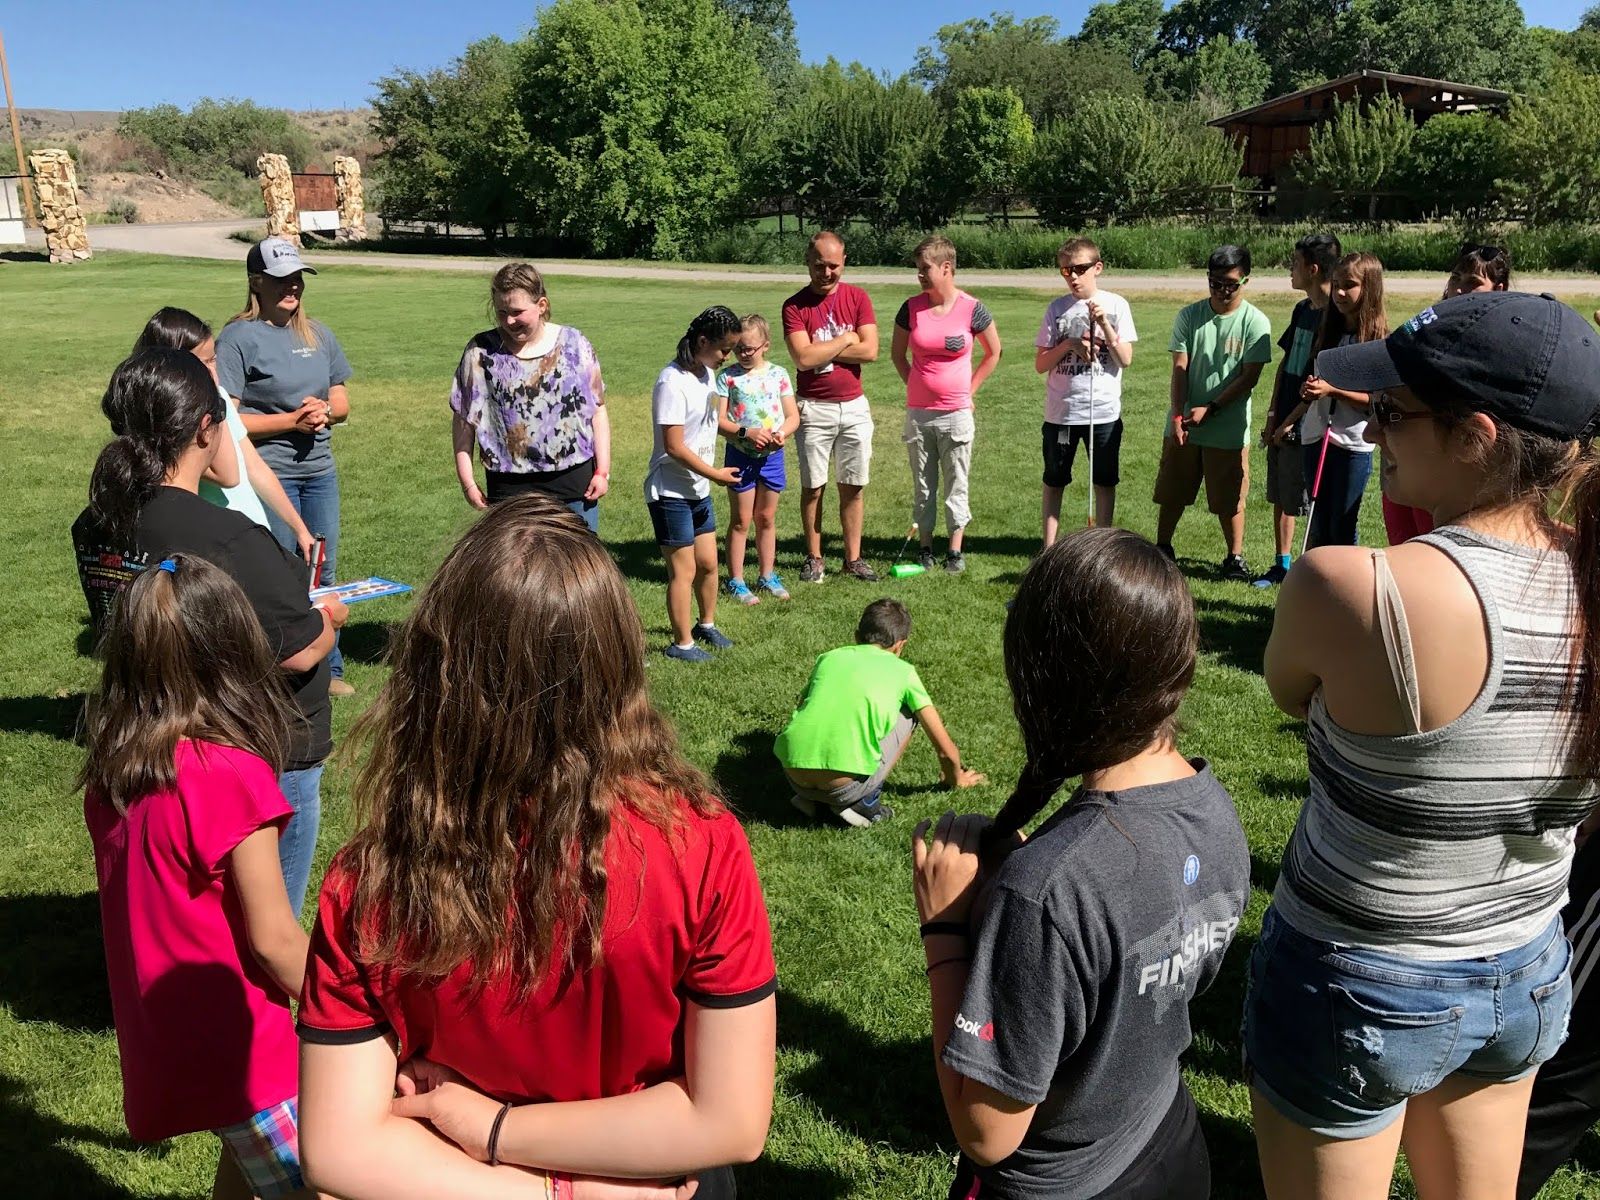 Students are in a circle for lawn games playing a game.